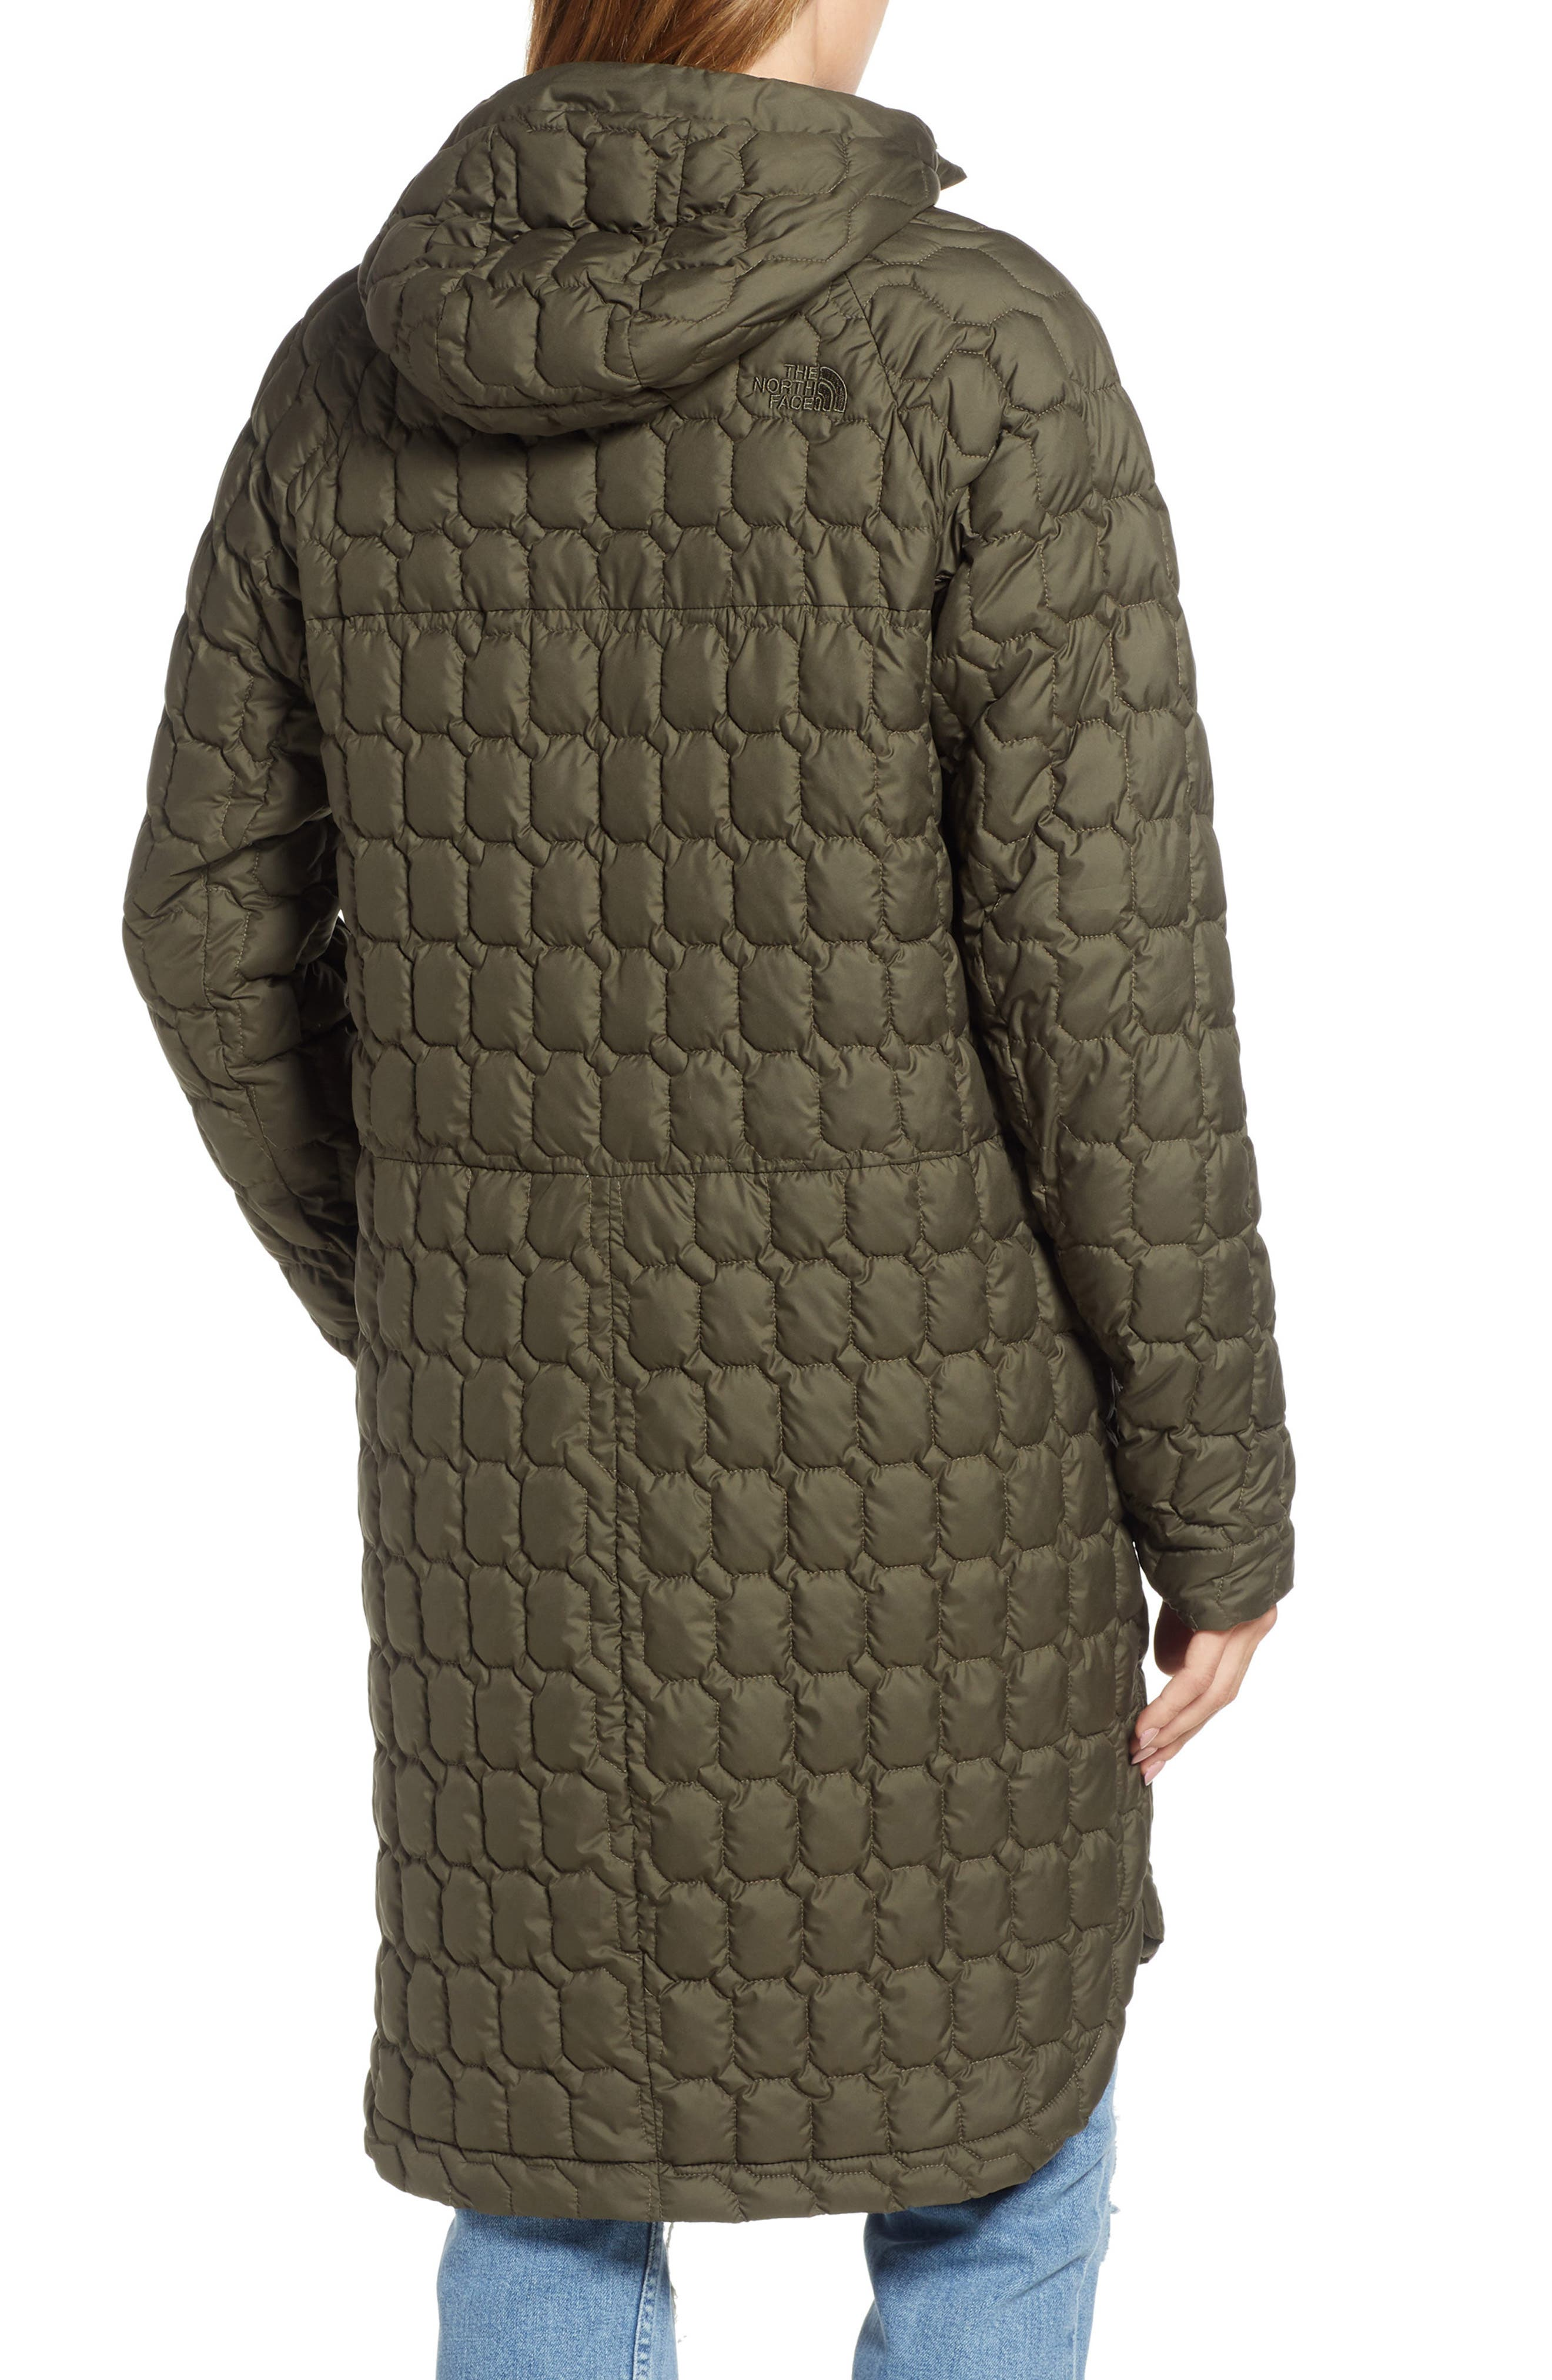 THE NORTH FACE, Thermoball<sup>™</sup> Water Resistant Duster Jacket, Alternate thumbnail 4, color, 301